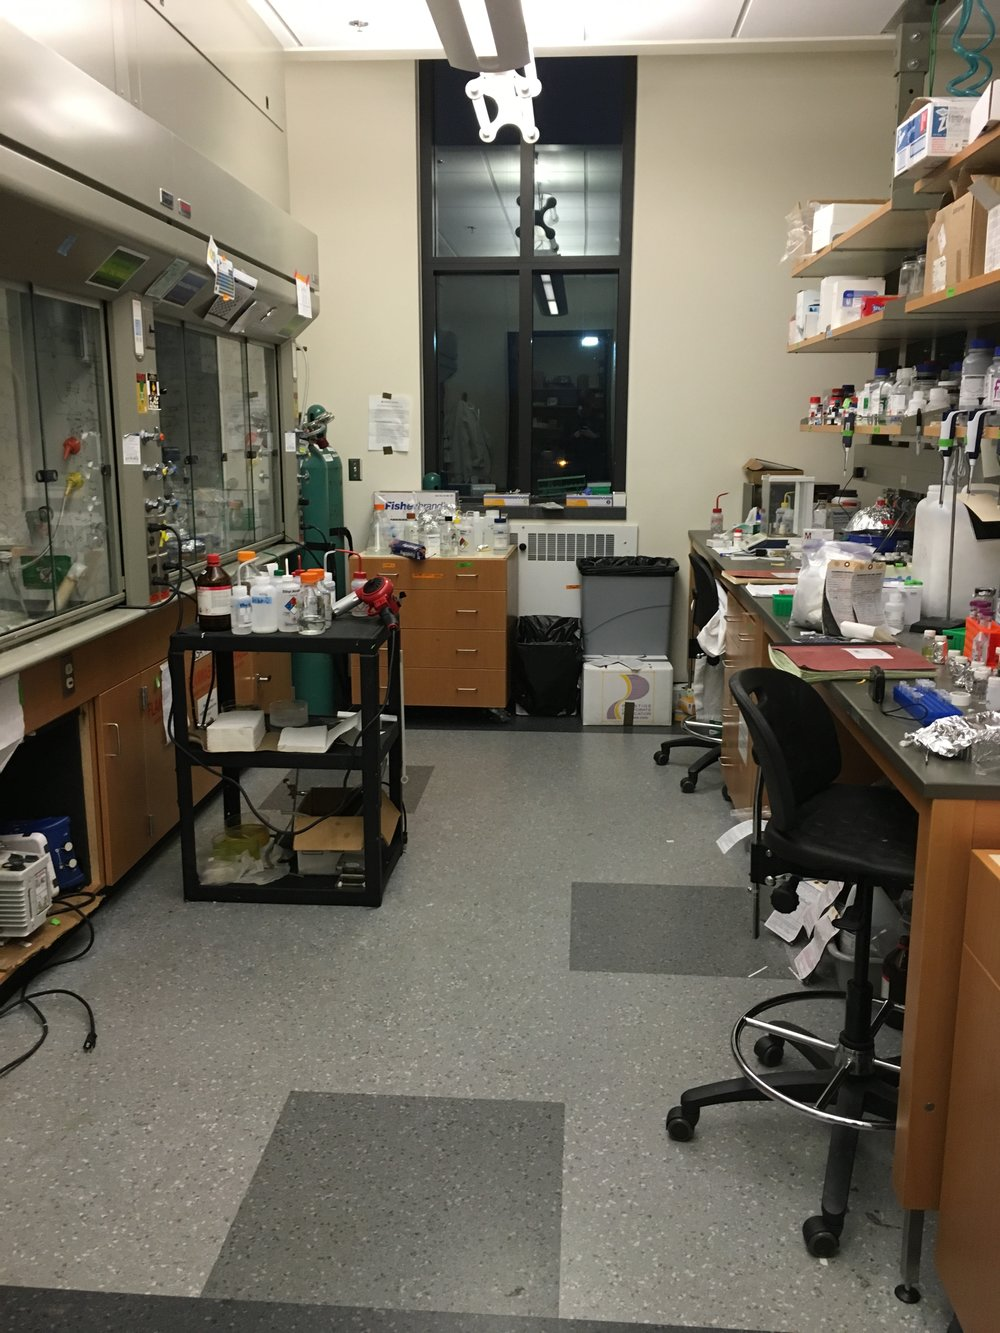 I practically lived in this area for a while – we moved to a nicer lab after a year.